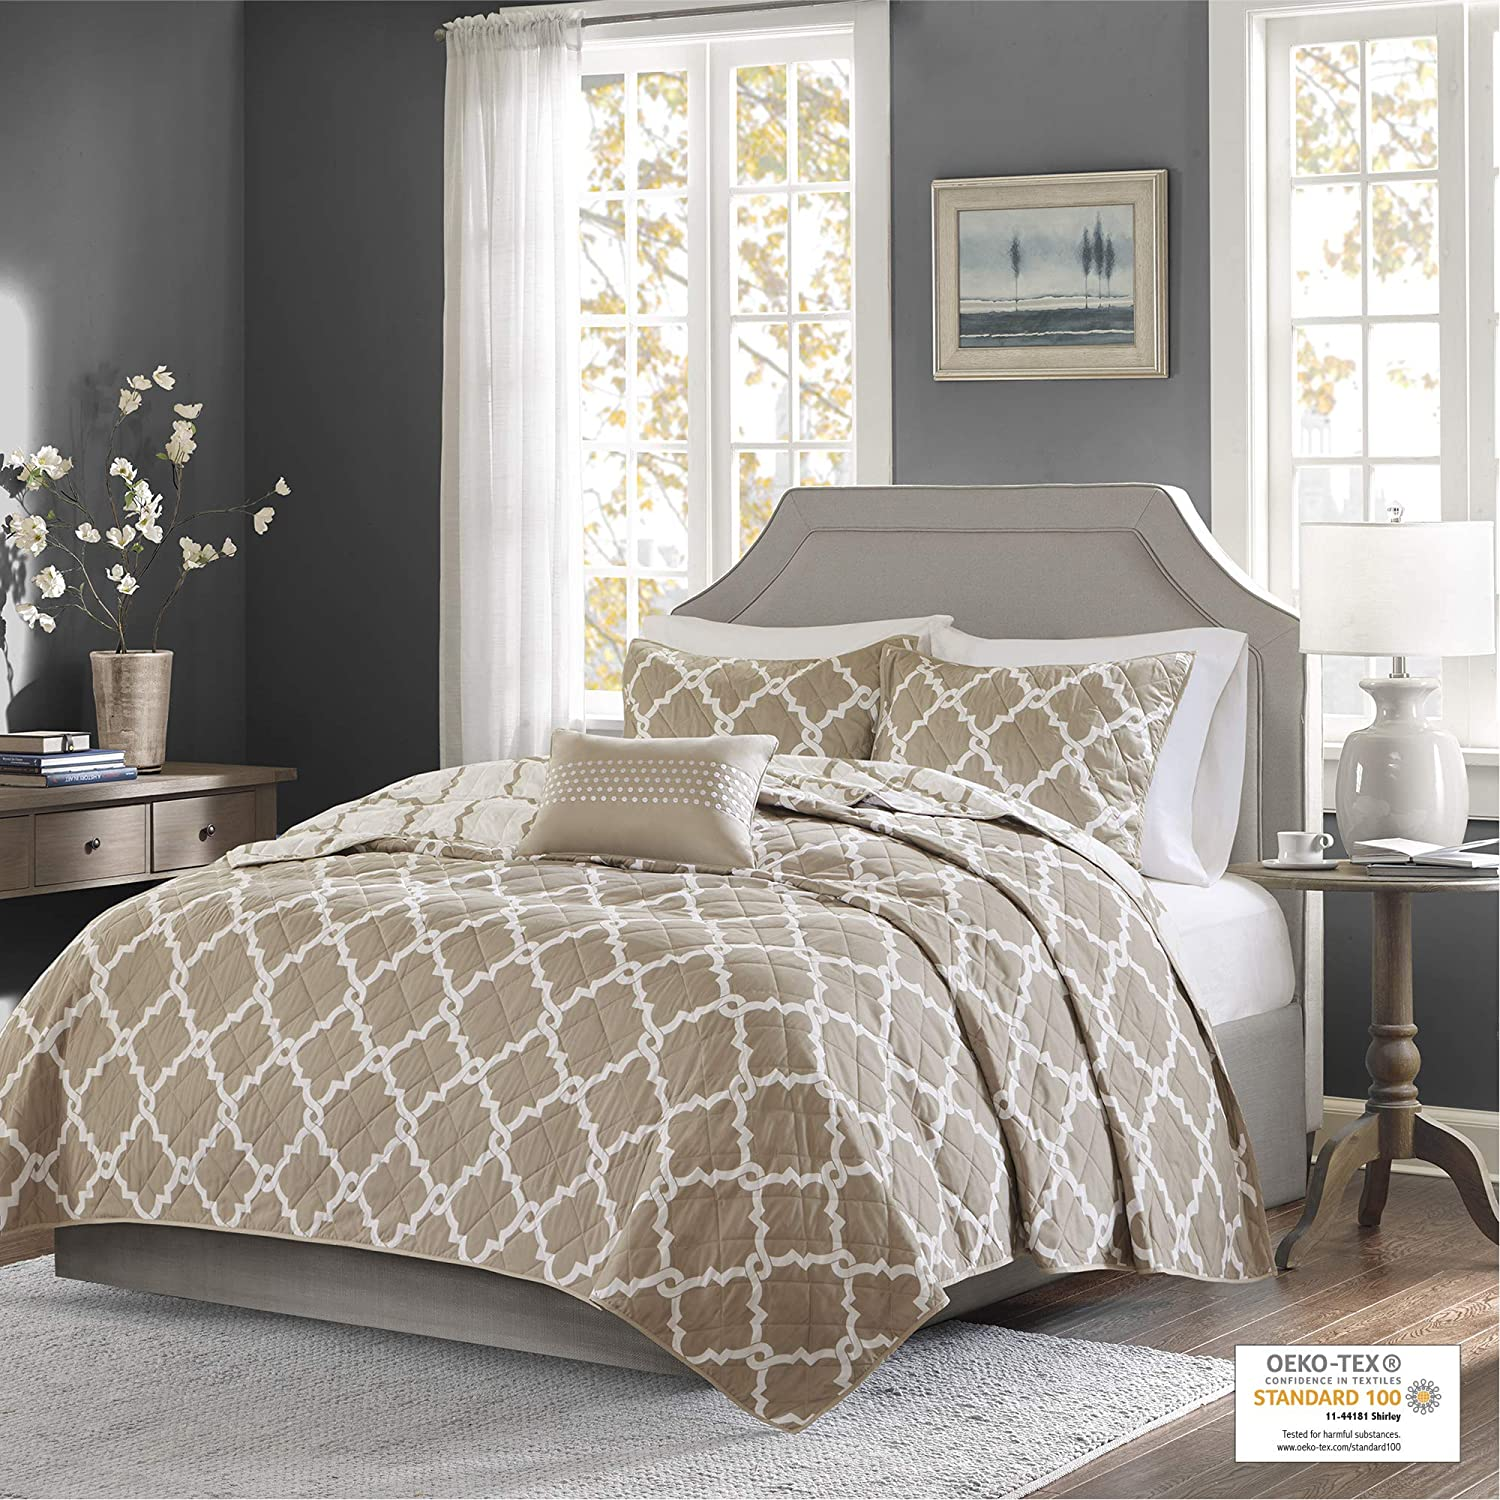 Madison Park Essentials Merritt King Quilt low-pricing Washington Mall Bedding Size Cal